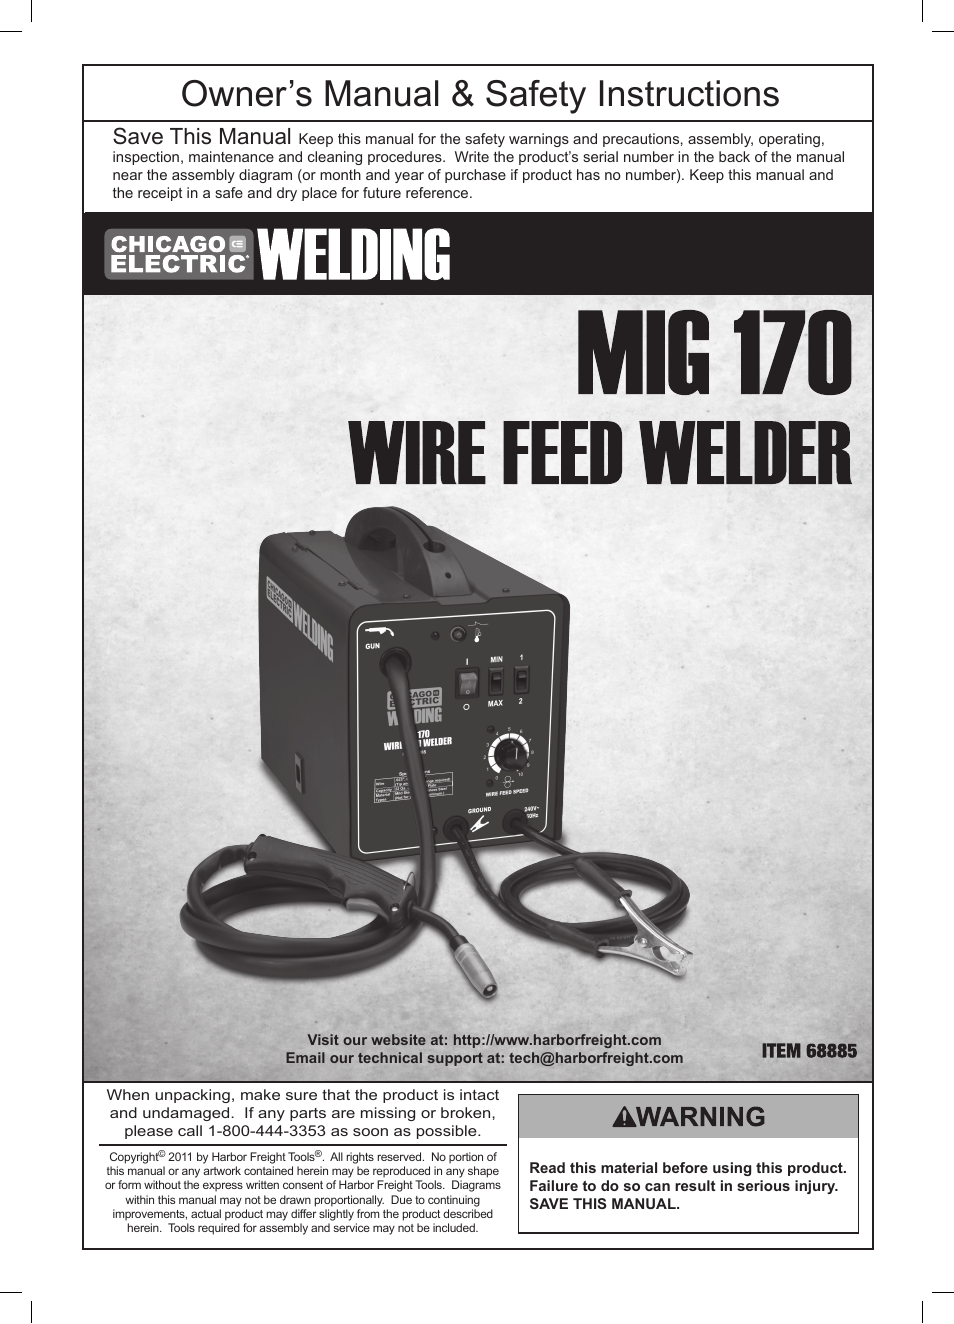 Chicago Electric Wire Feed Welder Mig 170 User Manual 32 Pages 110 Wiring Diagram